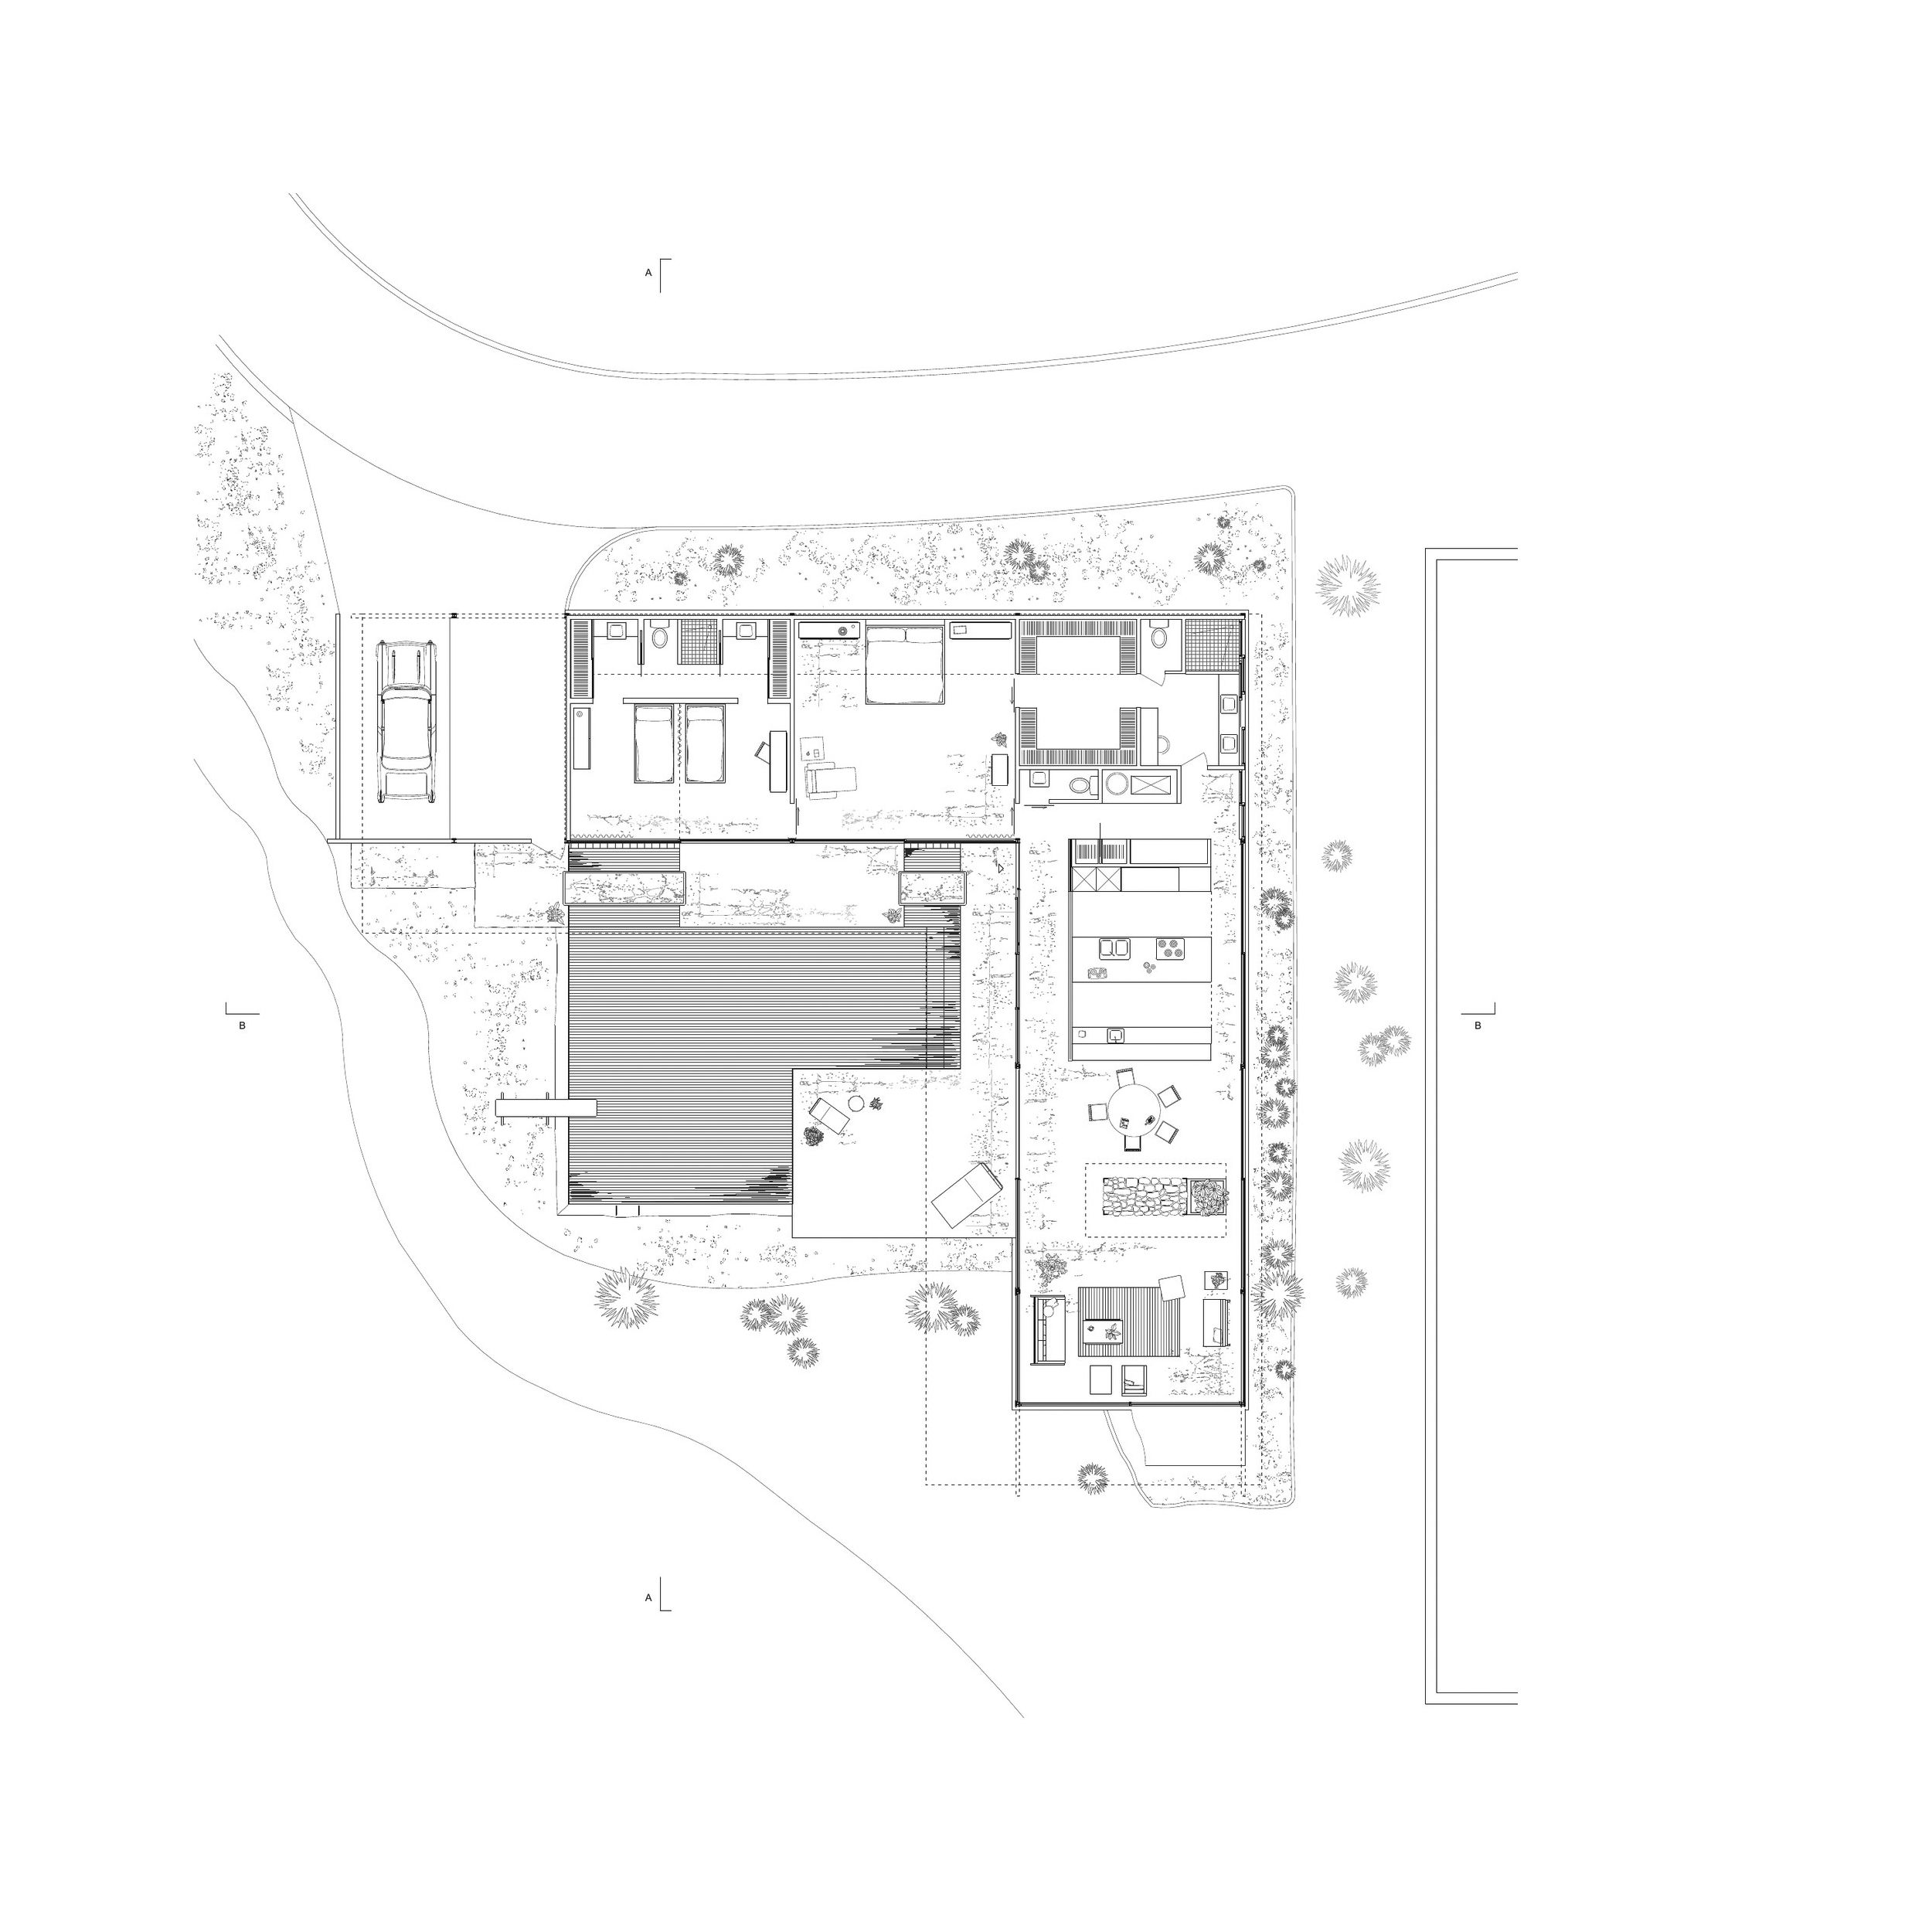 stahl house by pierre koenig 606ar atlas of places